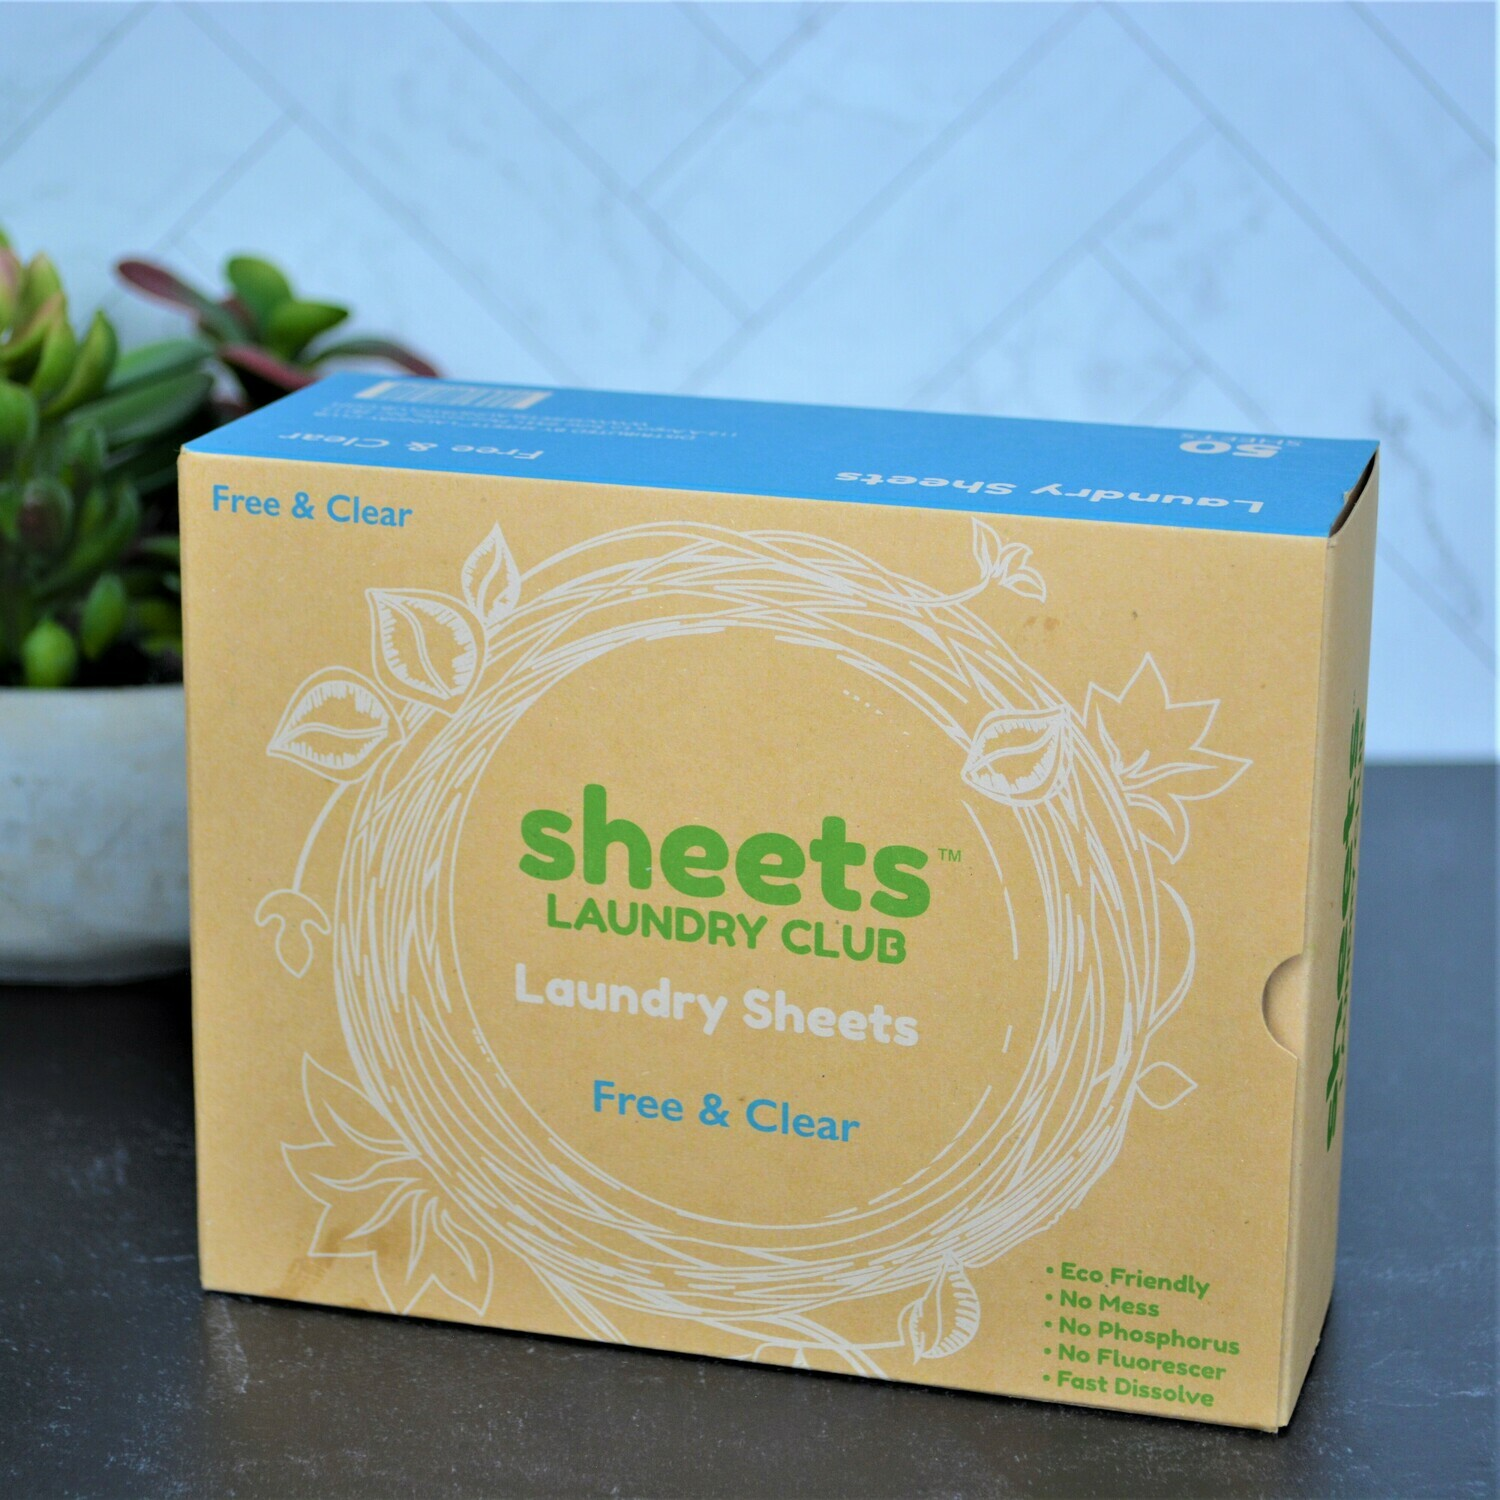 Free & Clear Laundry Detergent -Sheets